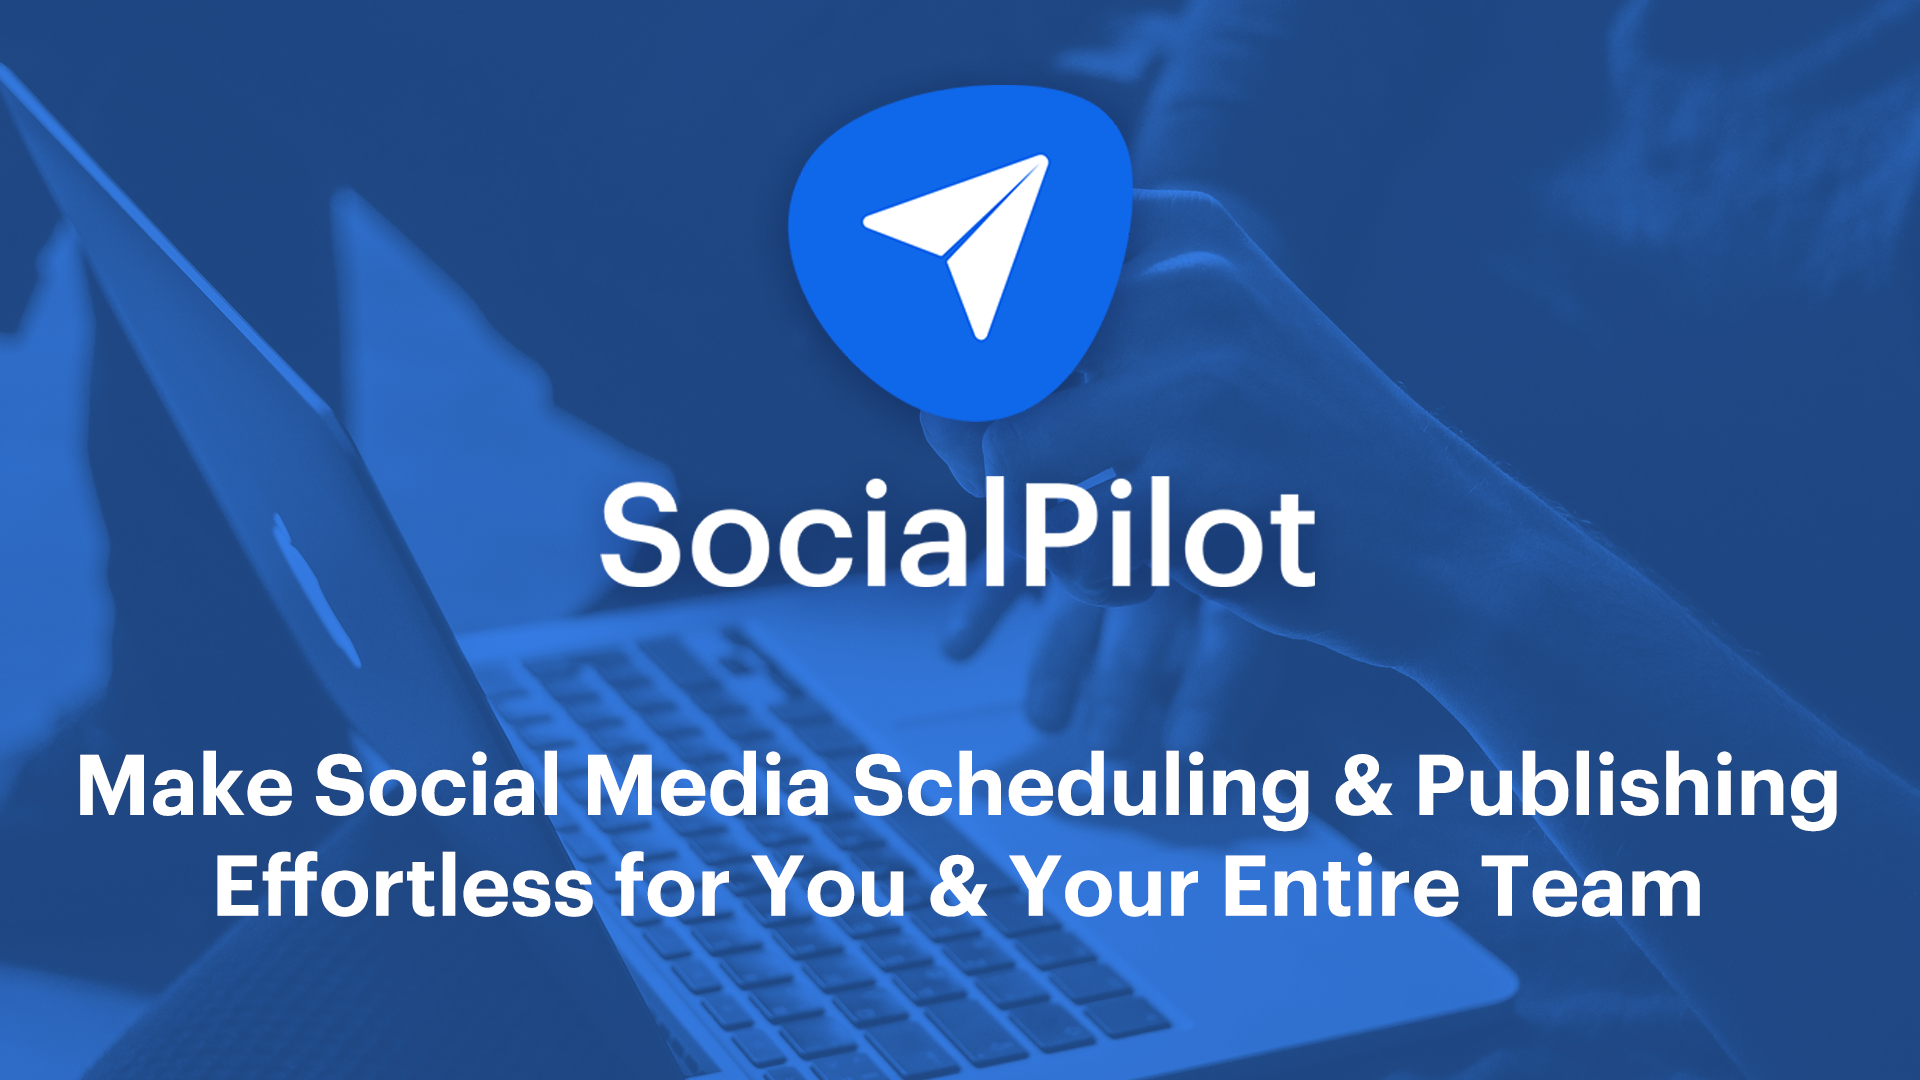 Why Do We Need SocialPilot? SocialPilot Features & Pricing